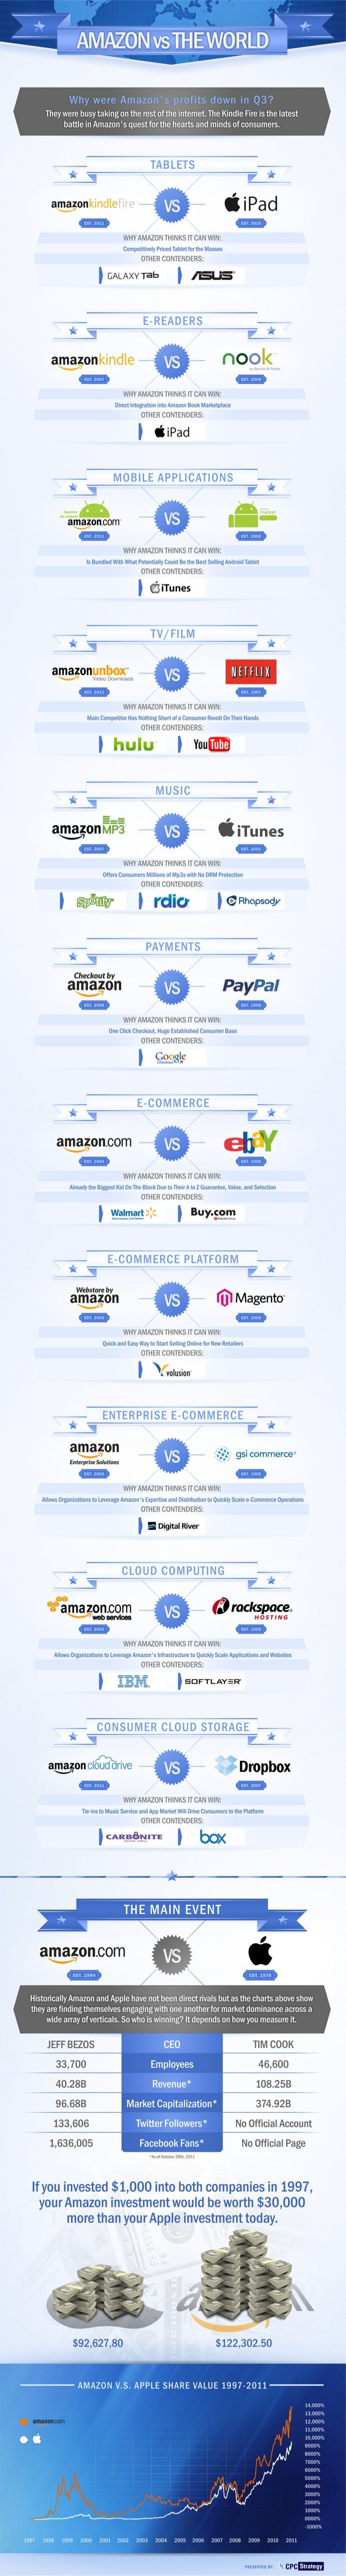 Amazon v. the world   an infographic detailing amazon's growing number of product lines and main competitors